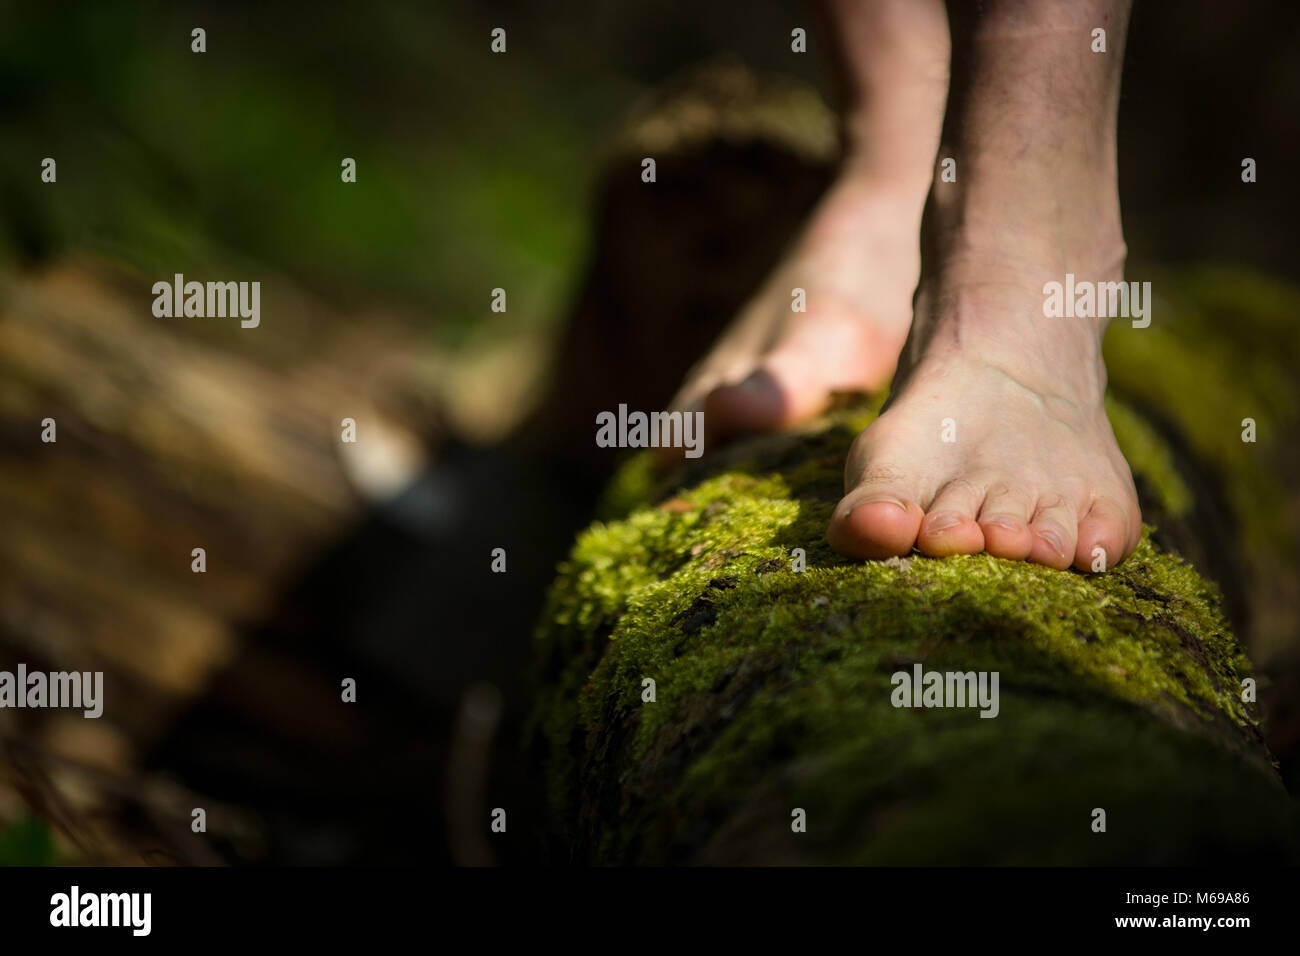 A Barefooted Man Standing on a Log Covered with Bright Green Moss. - Stock Image